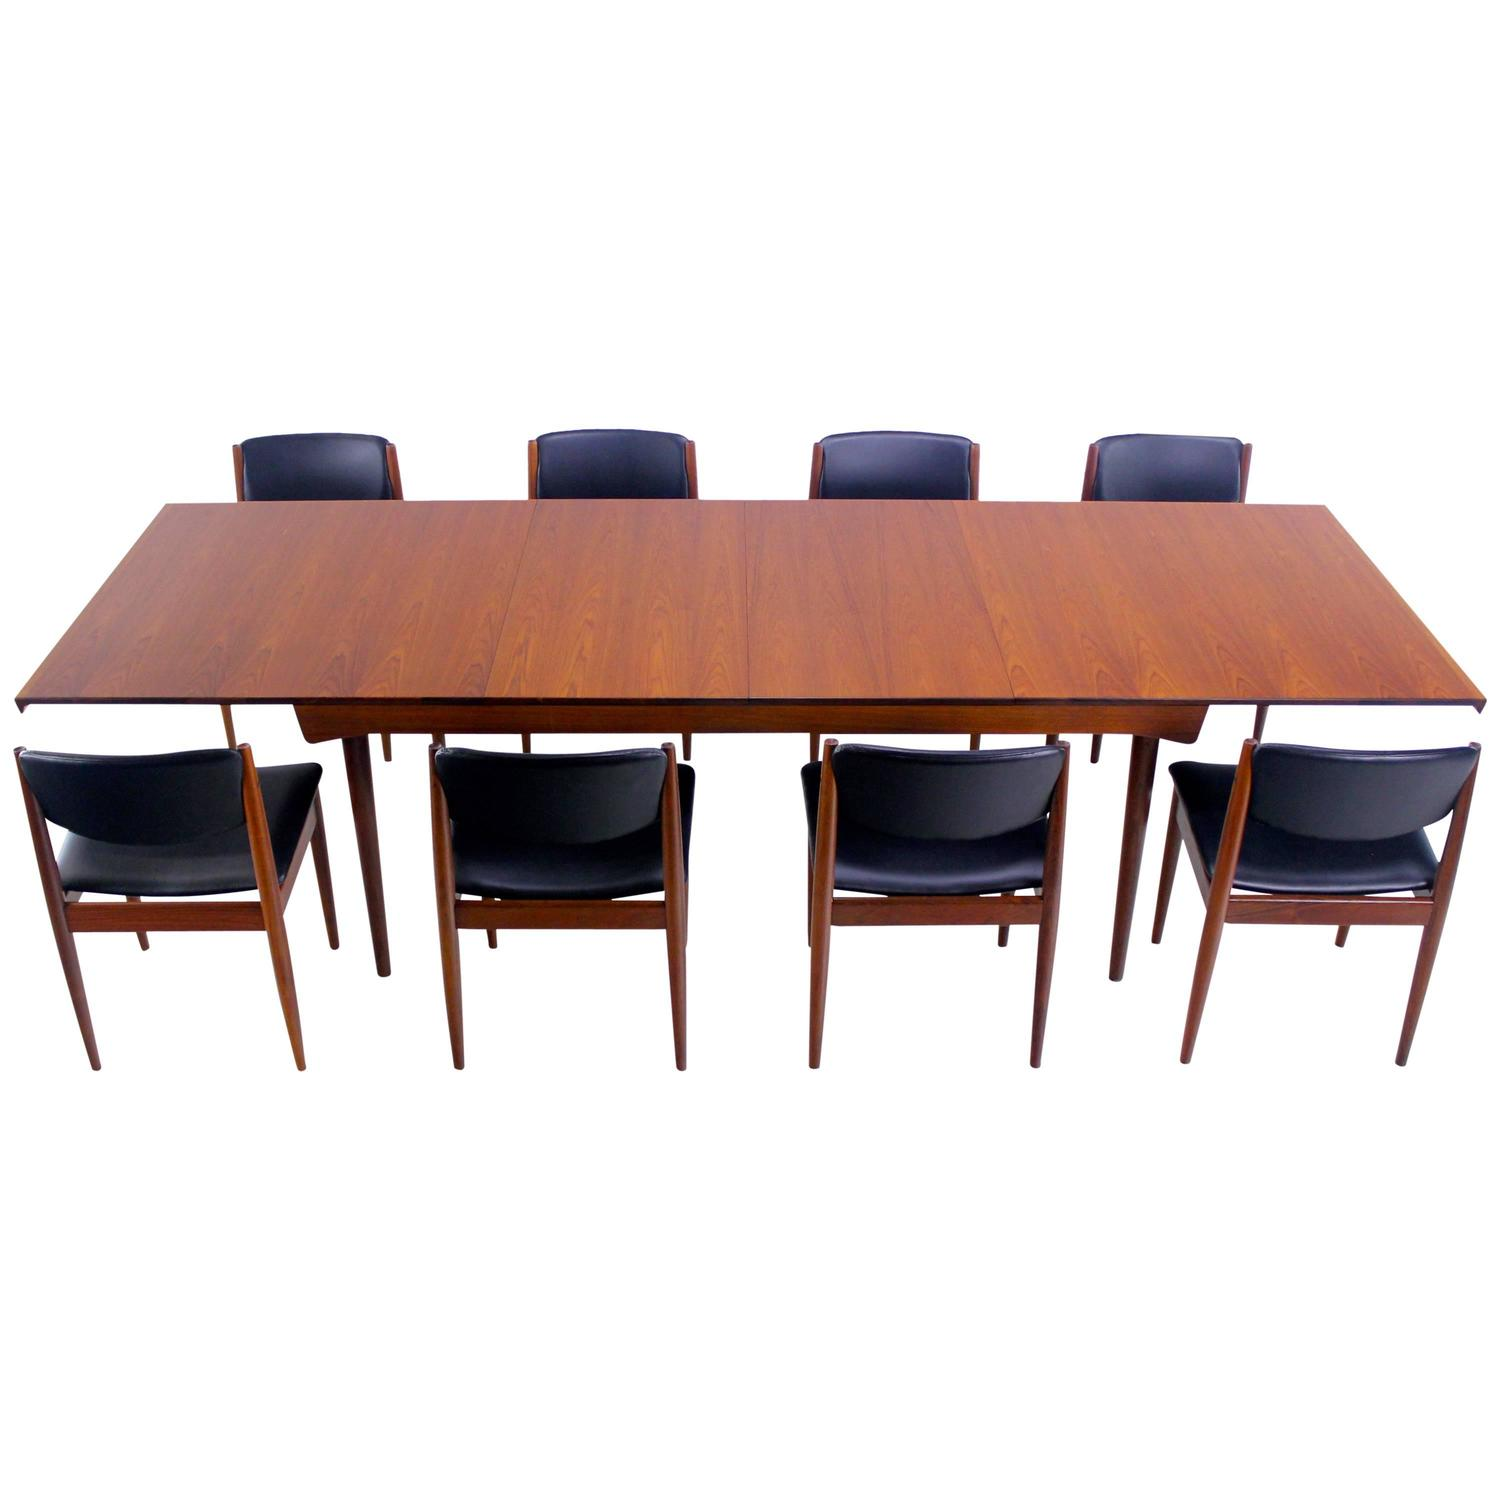 Danish Modern Teak Dining Set Designed By Finn Juhl For